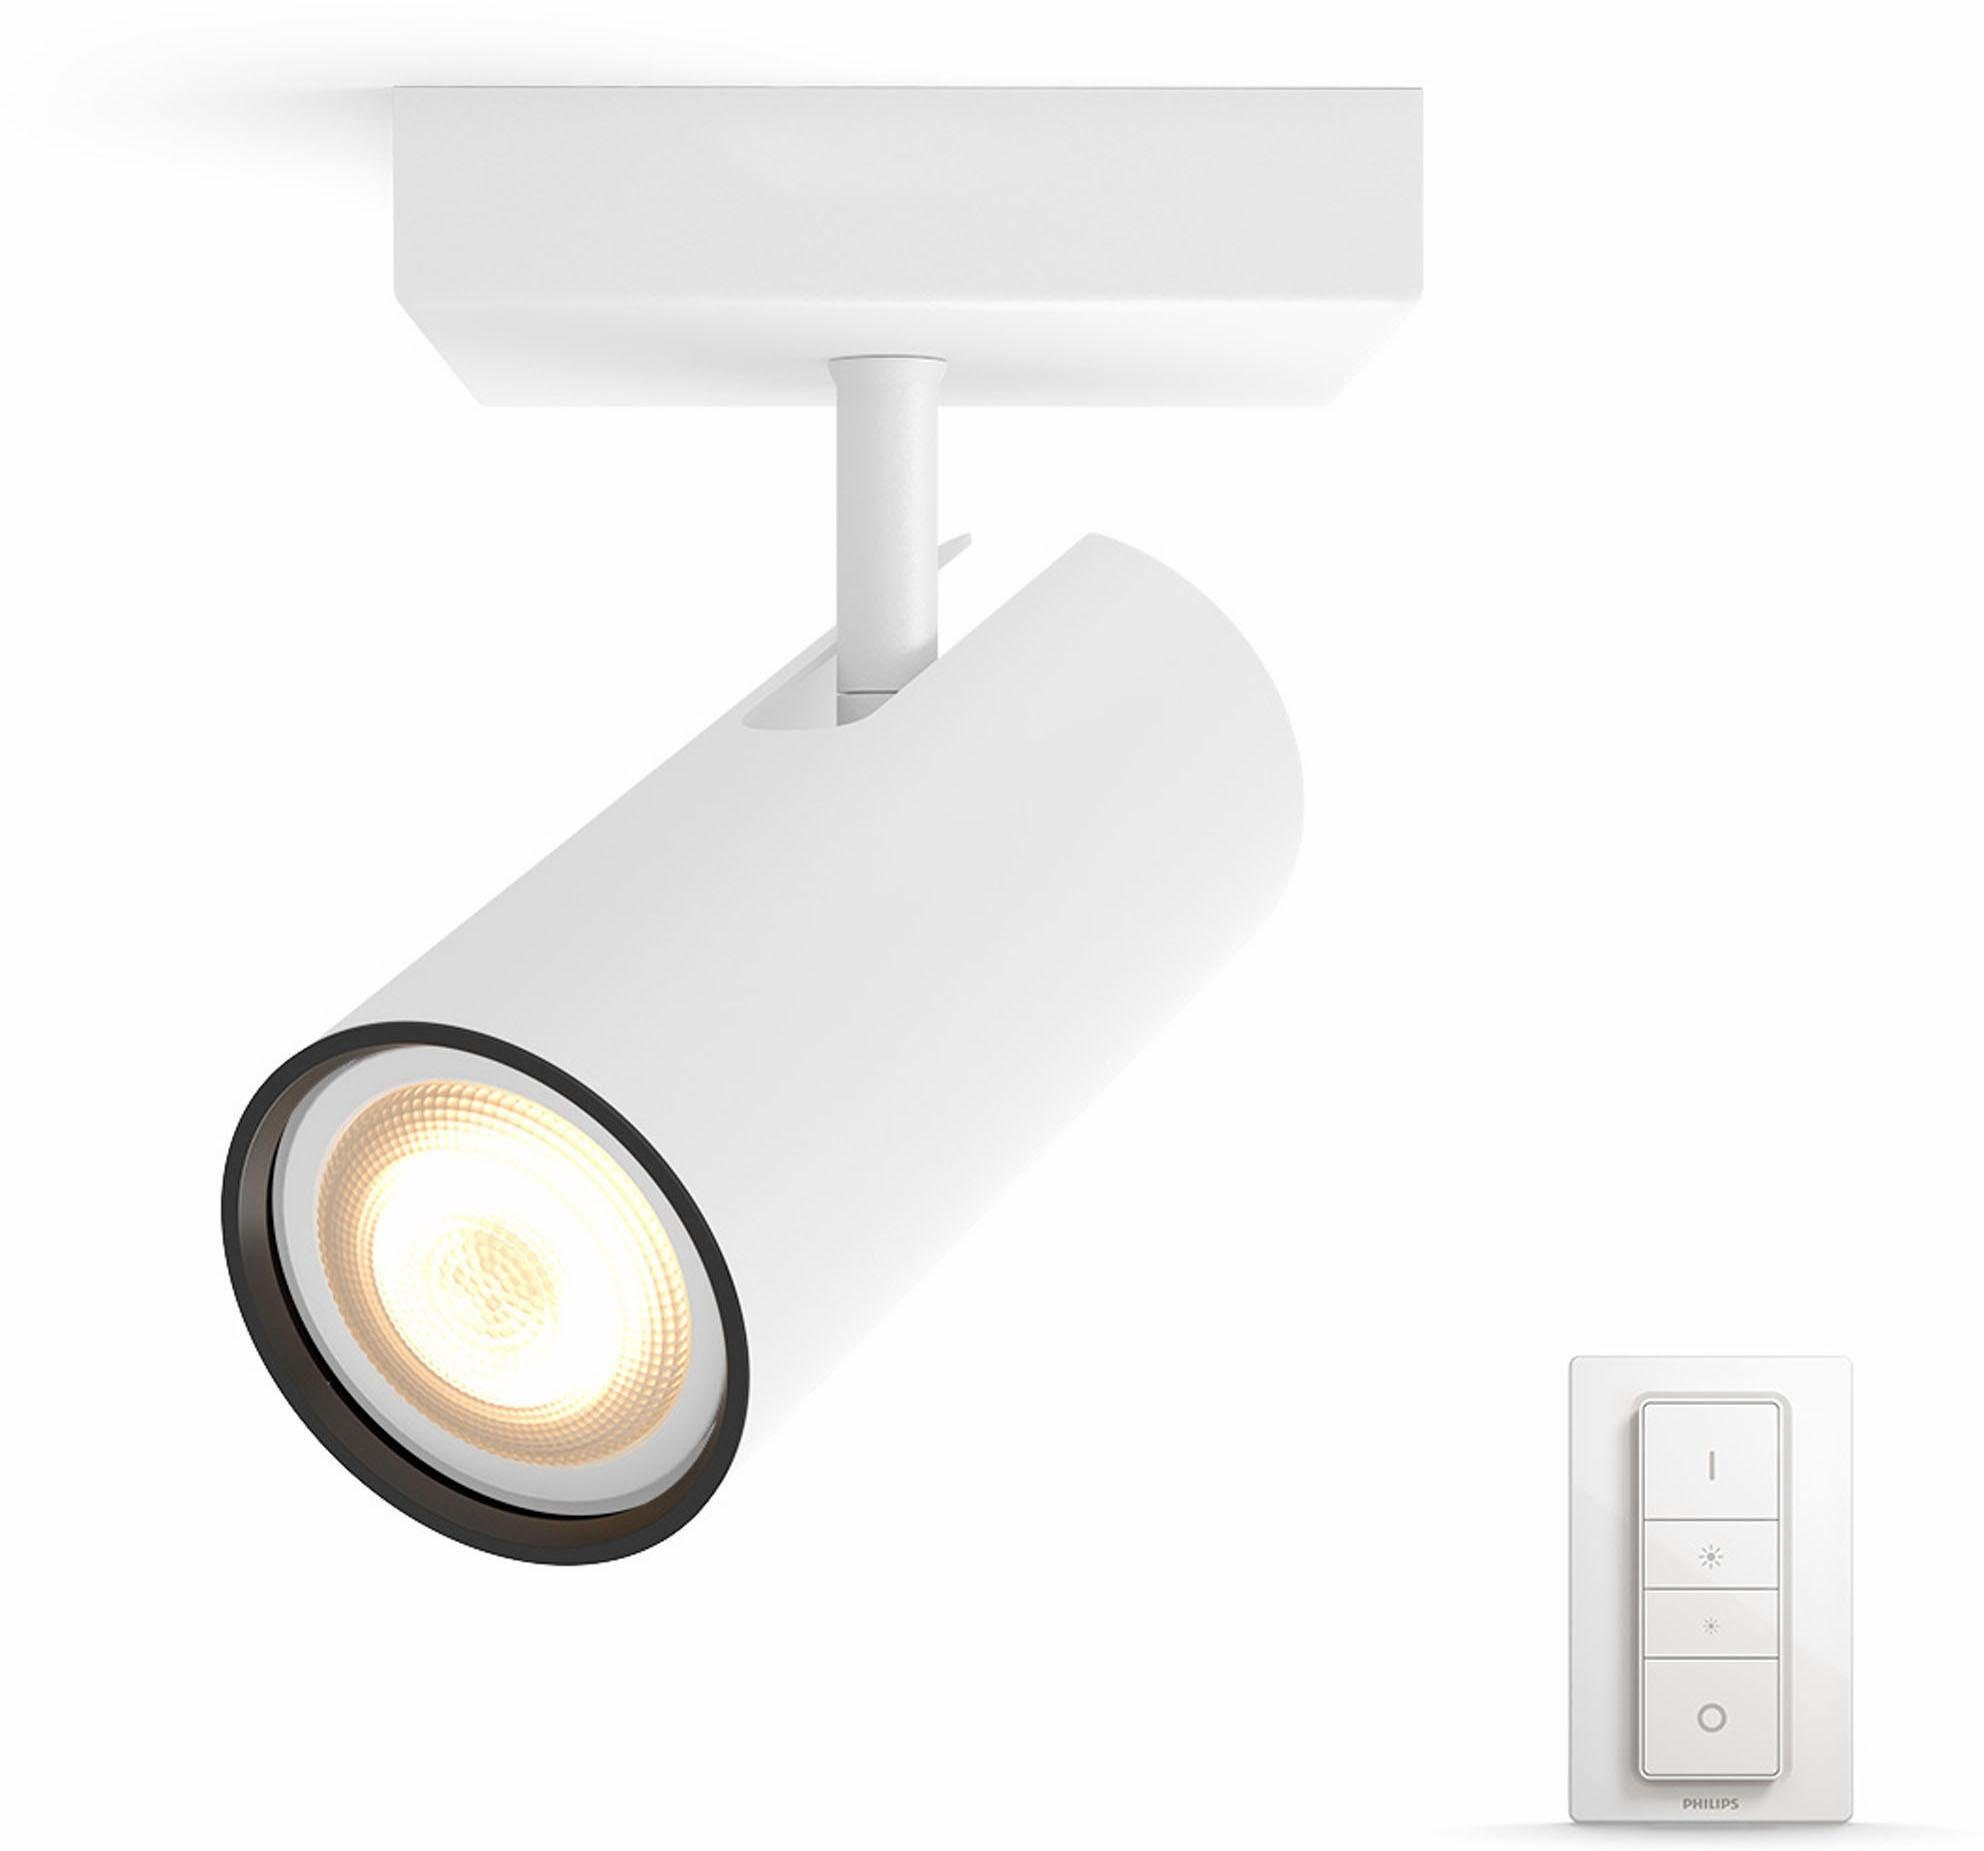 Philips Hue LED Deckenstrahler »Buratto«, 1-flammig, Smart Home